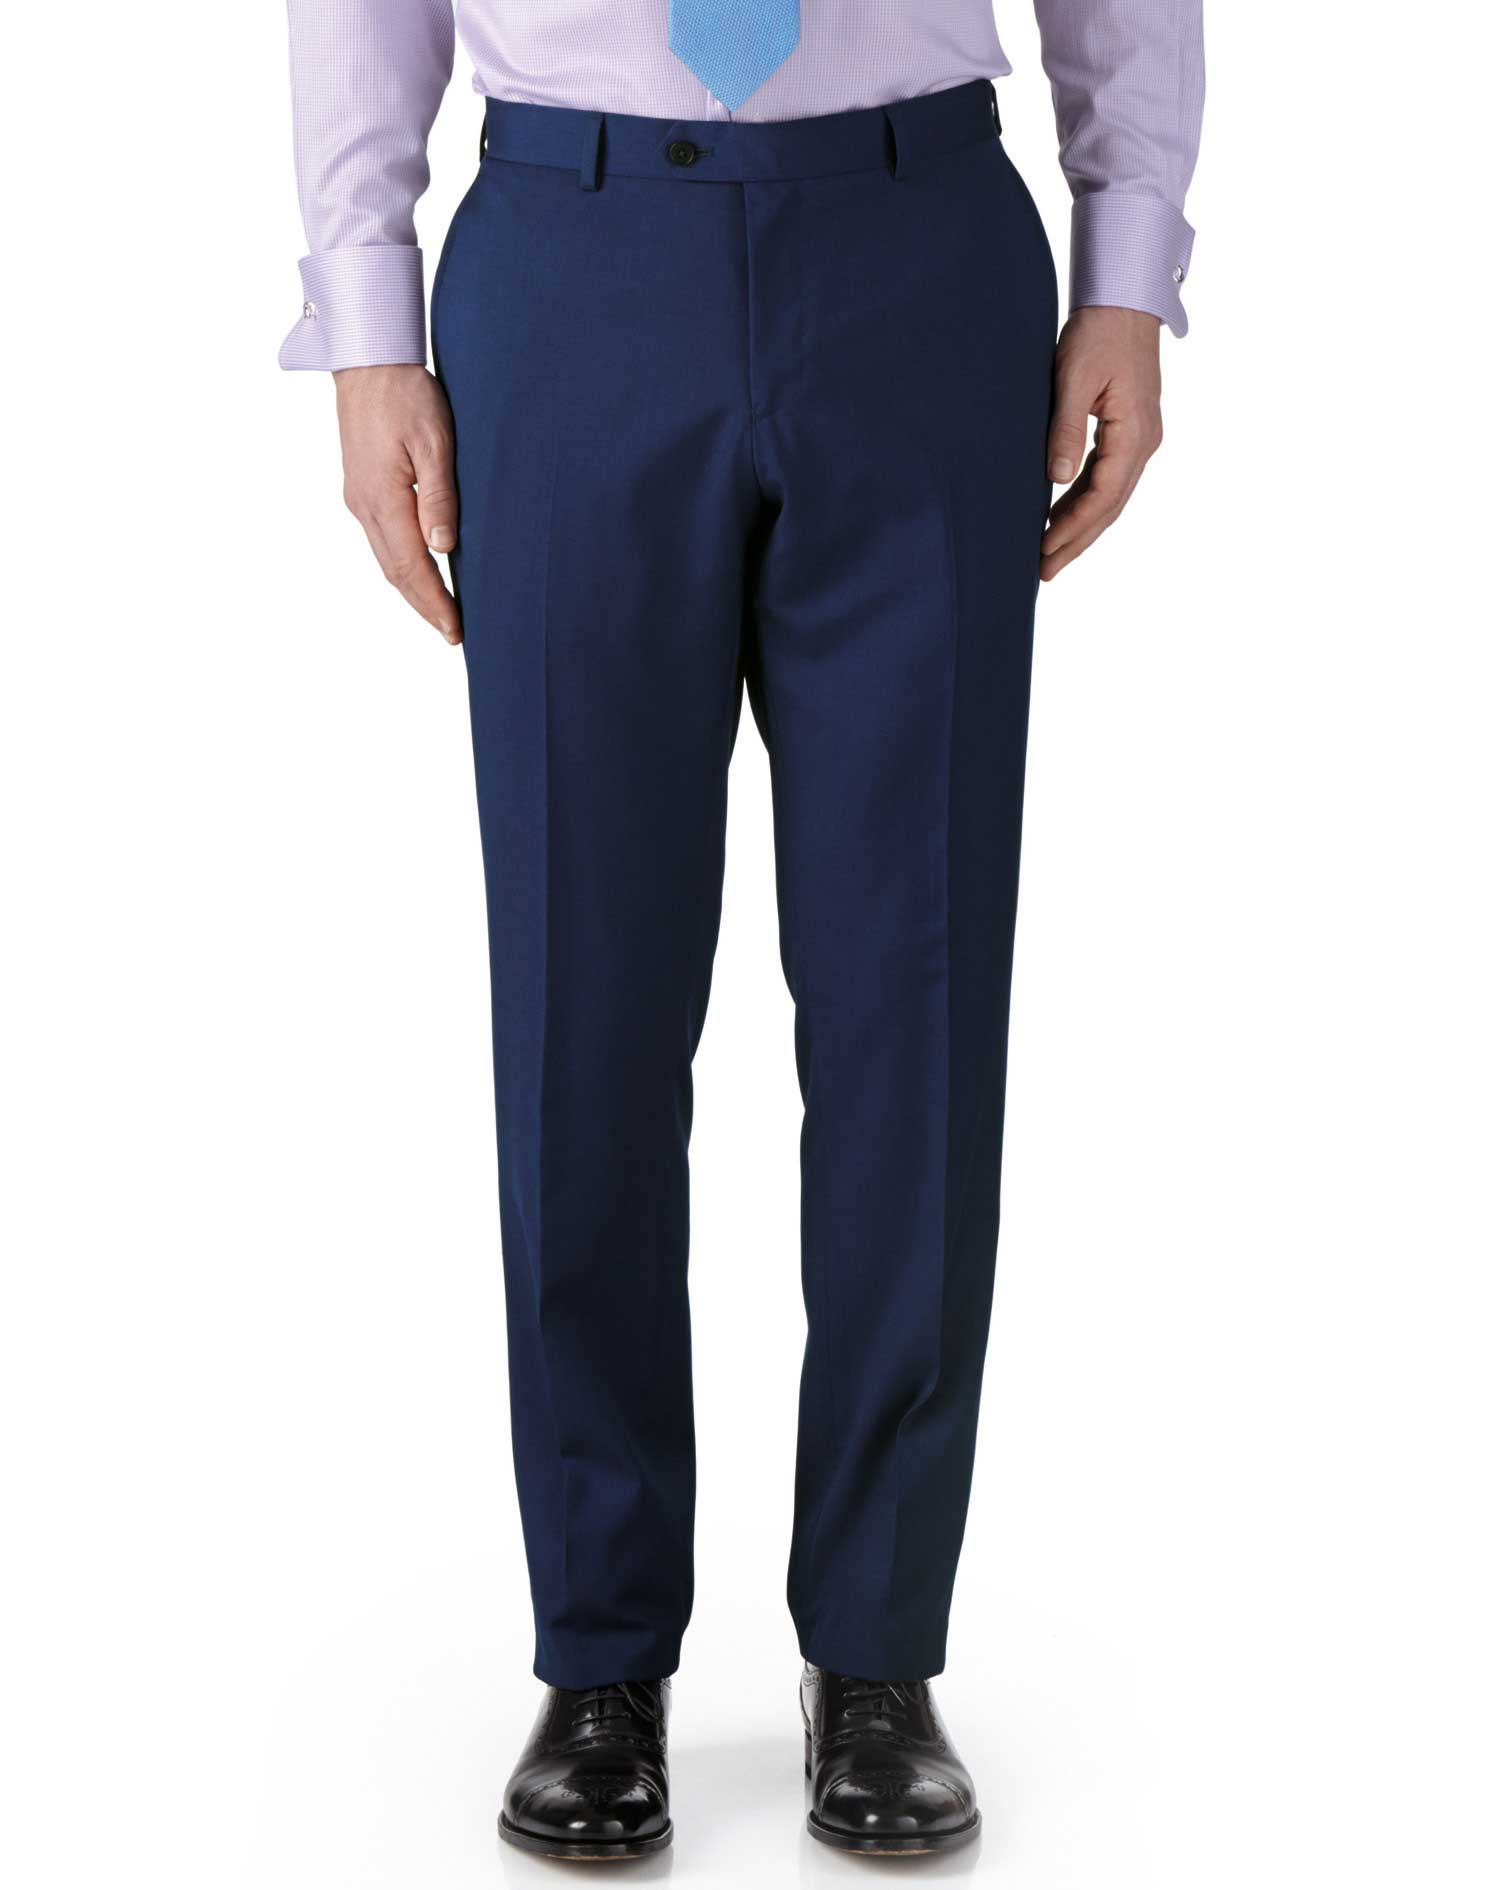 Royal Blue Classic Fit Twill Business Suit Trousers Size W42 L34 by Charles Tyrwhitt